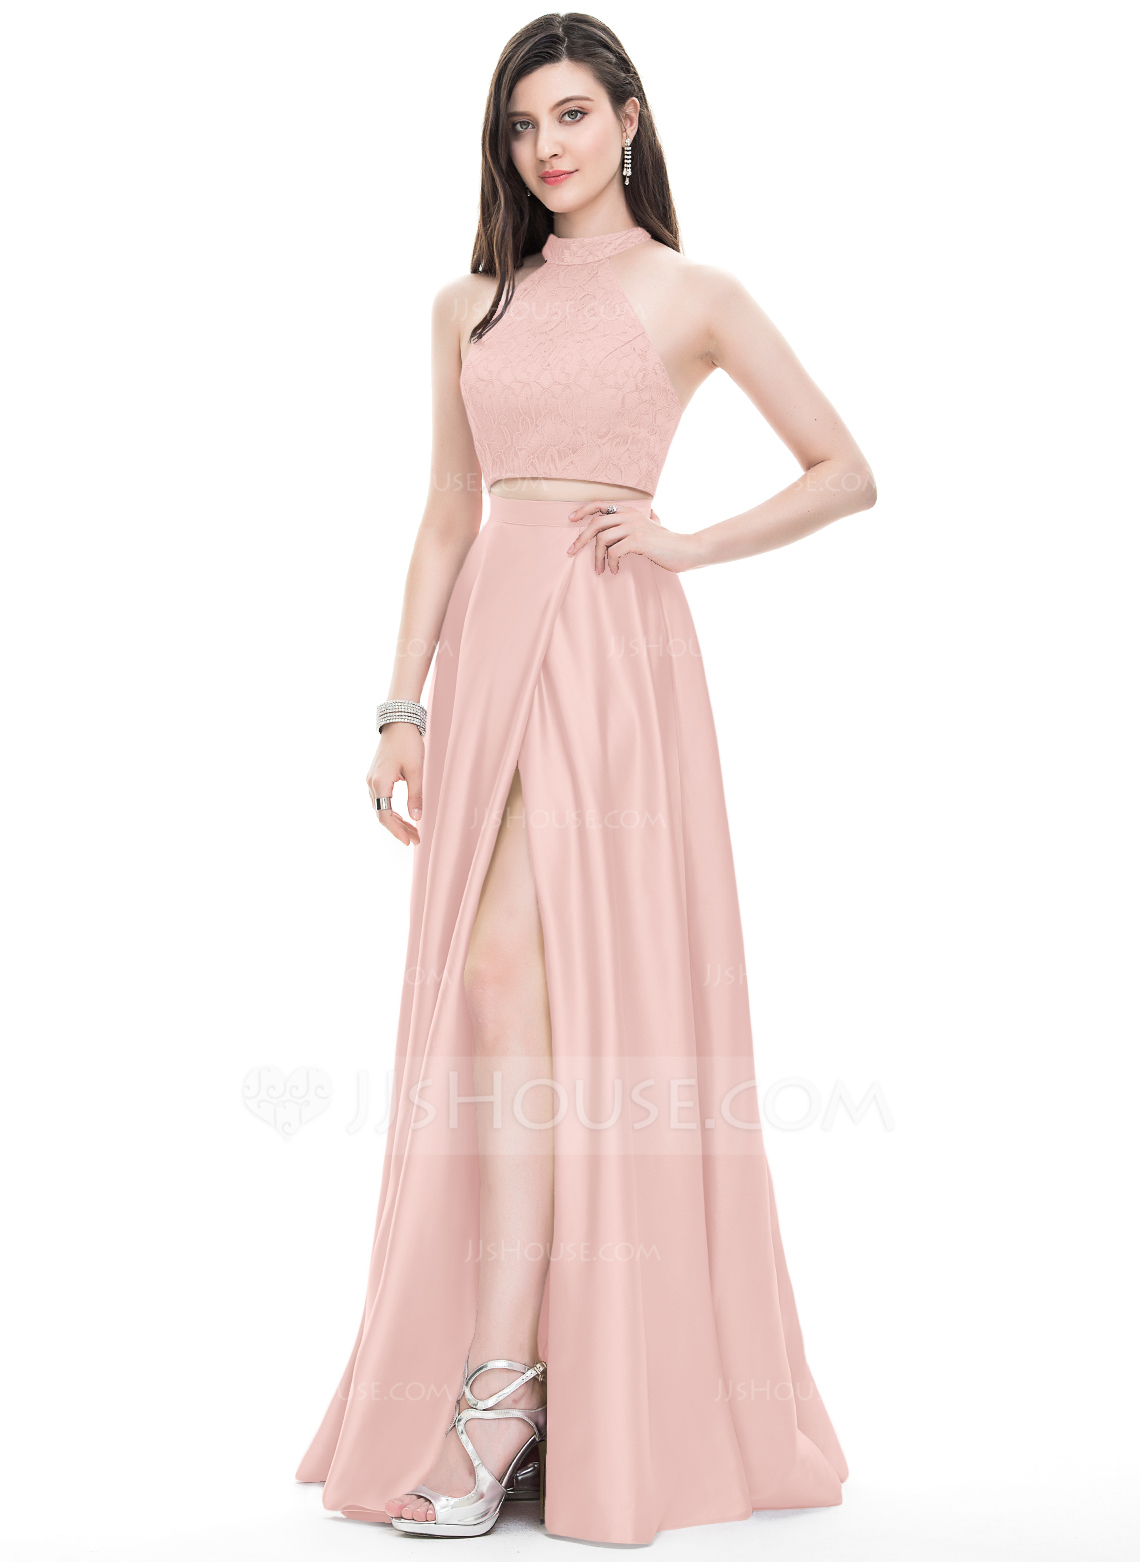 fdc49d85d87 A-Line Princess Scoop Neck High Neck Floor-Length Satin Prom Dresses With Split  Front  105694